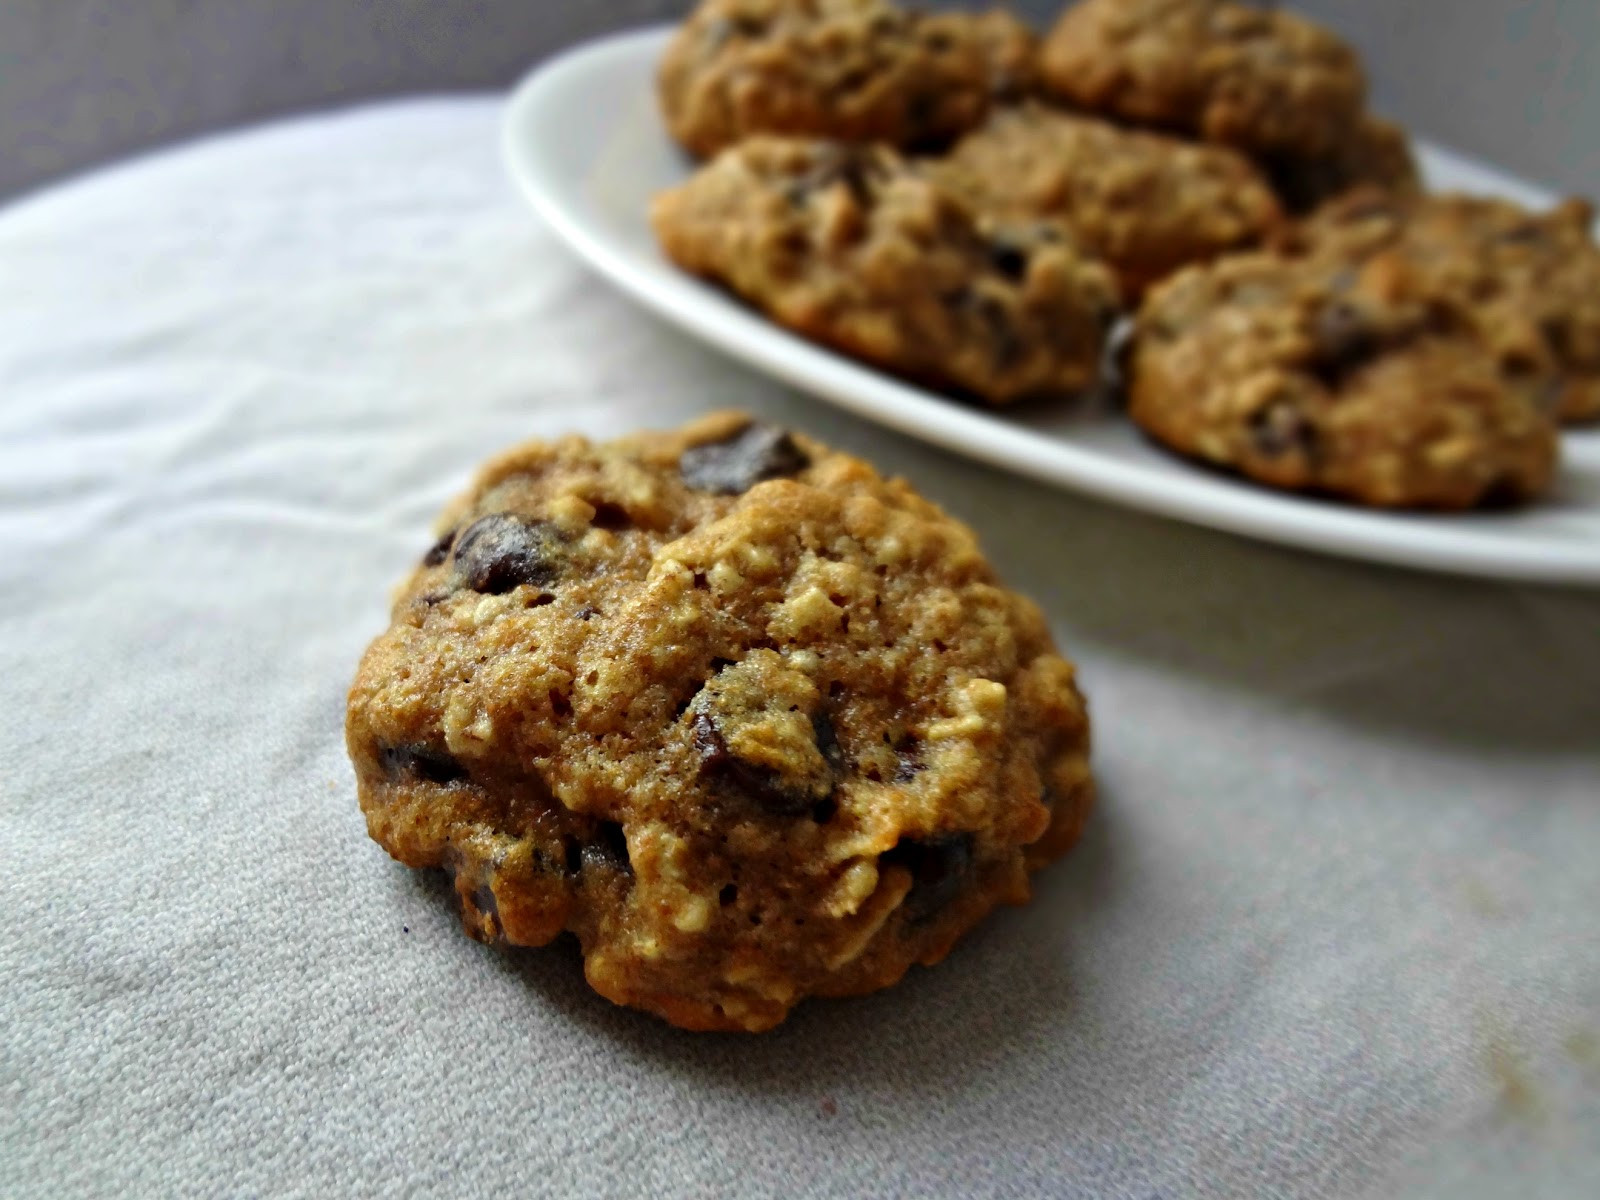 Healthy Oatmeal Choc Chip Cookies  The Cooking Actress Healthy Oatmeal Chocolate Chip Cookies